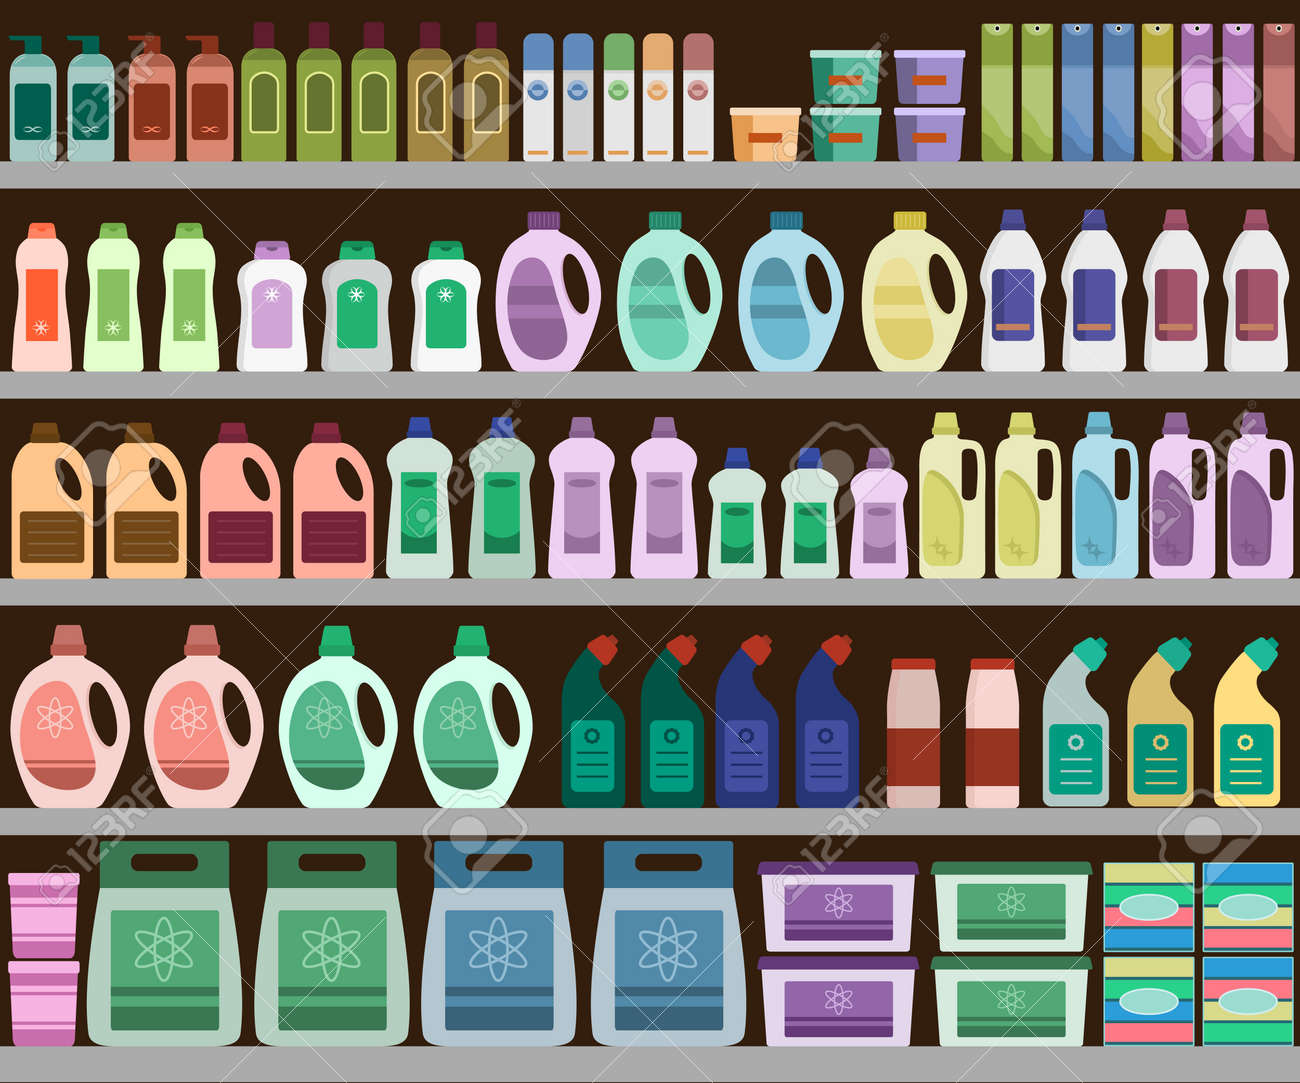 Household Supplies Aisle In The Supermarket, Shelves Filled With